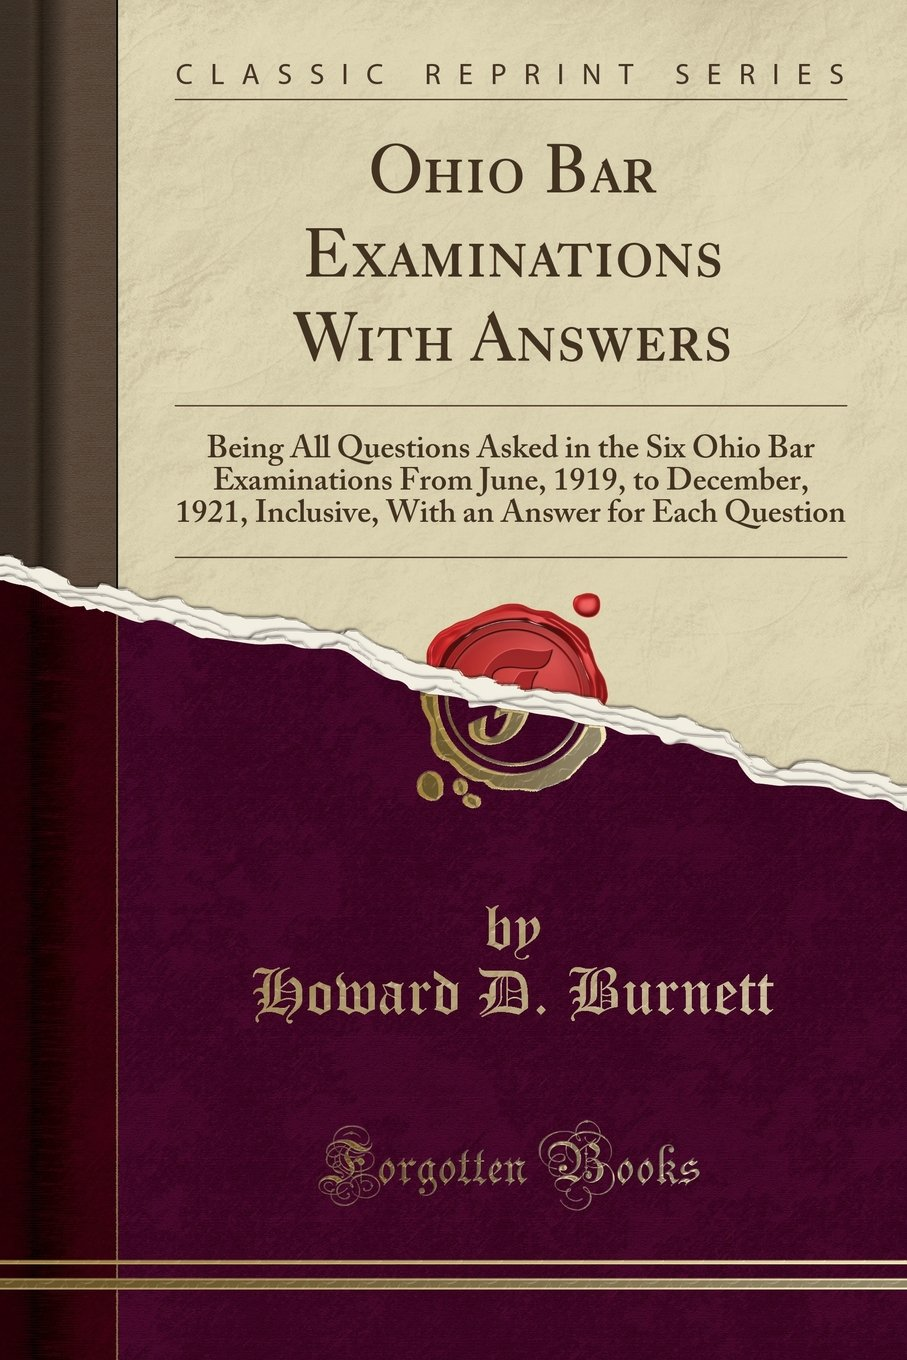 Read Online Ohio Bar Examinations With Answers: Being All Questions Asked in the Six Ohio Bar Examinations From June, 1919, to December, 1921, Inclusive, With an Answer for Each Question (Classic Reprint) pdf